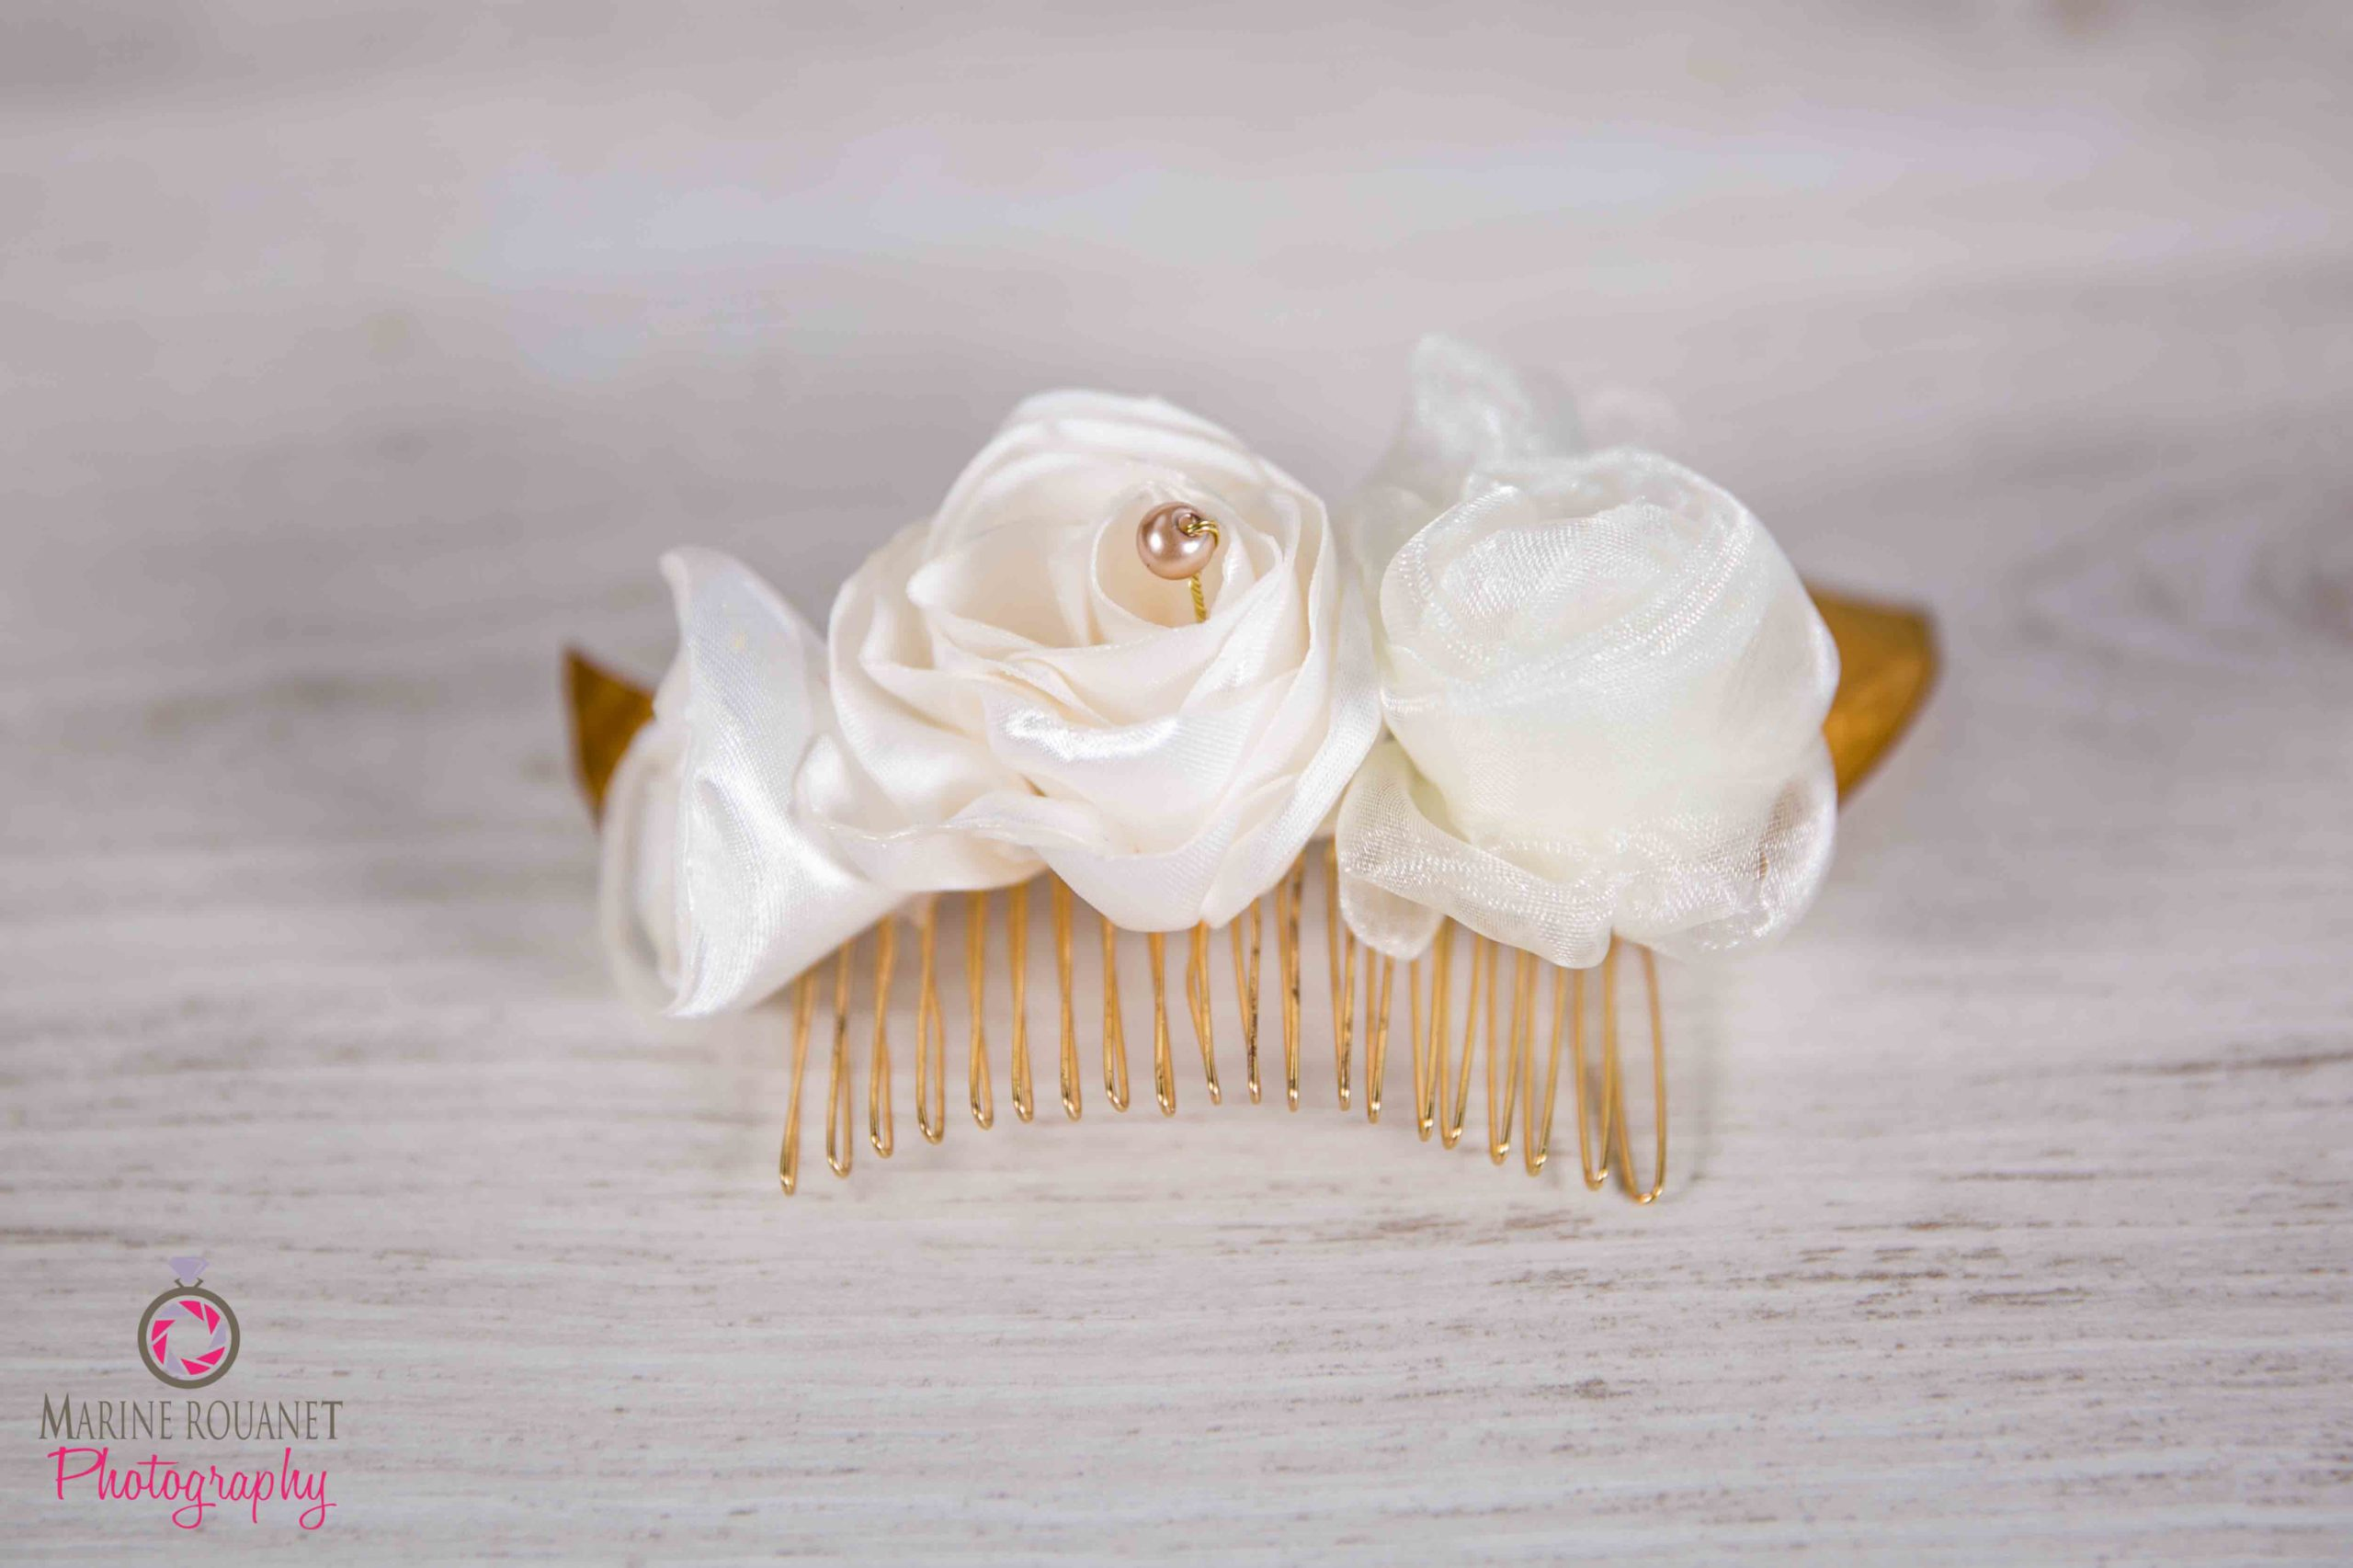 Arty Malice Fleuriste mariage Albi Toulouse Peigne mariée Collection Ivoire Or